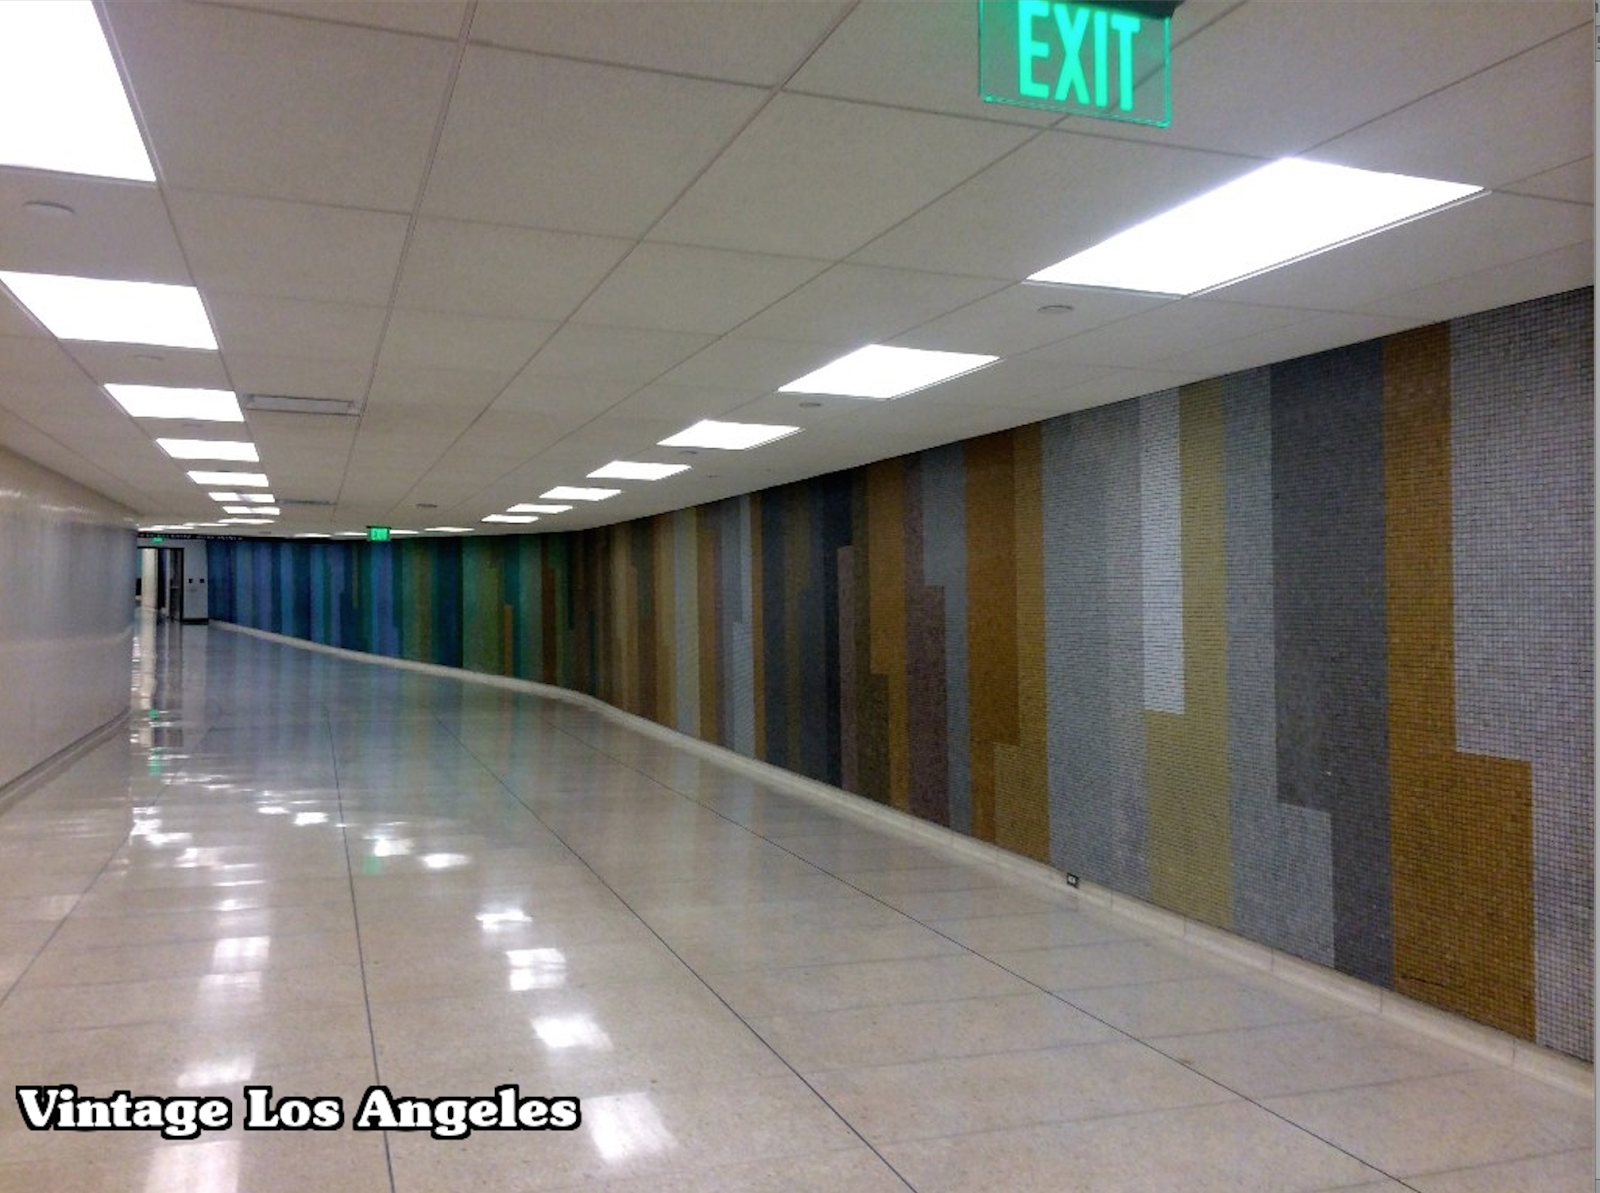 Mosaic Tiles at LAX